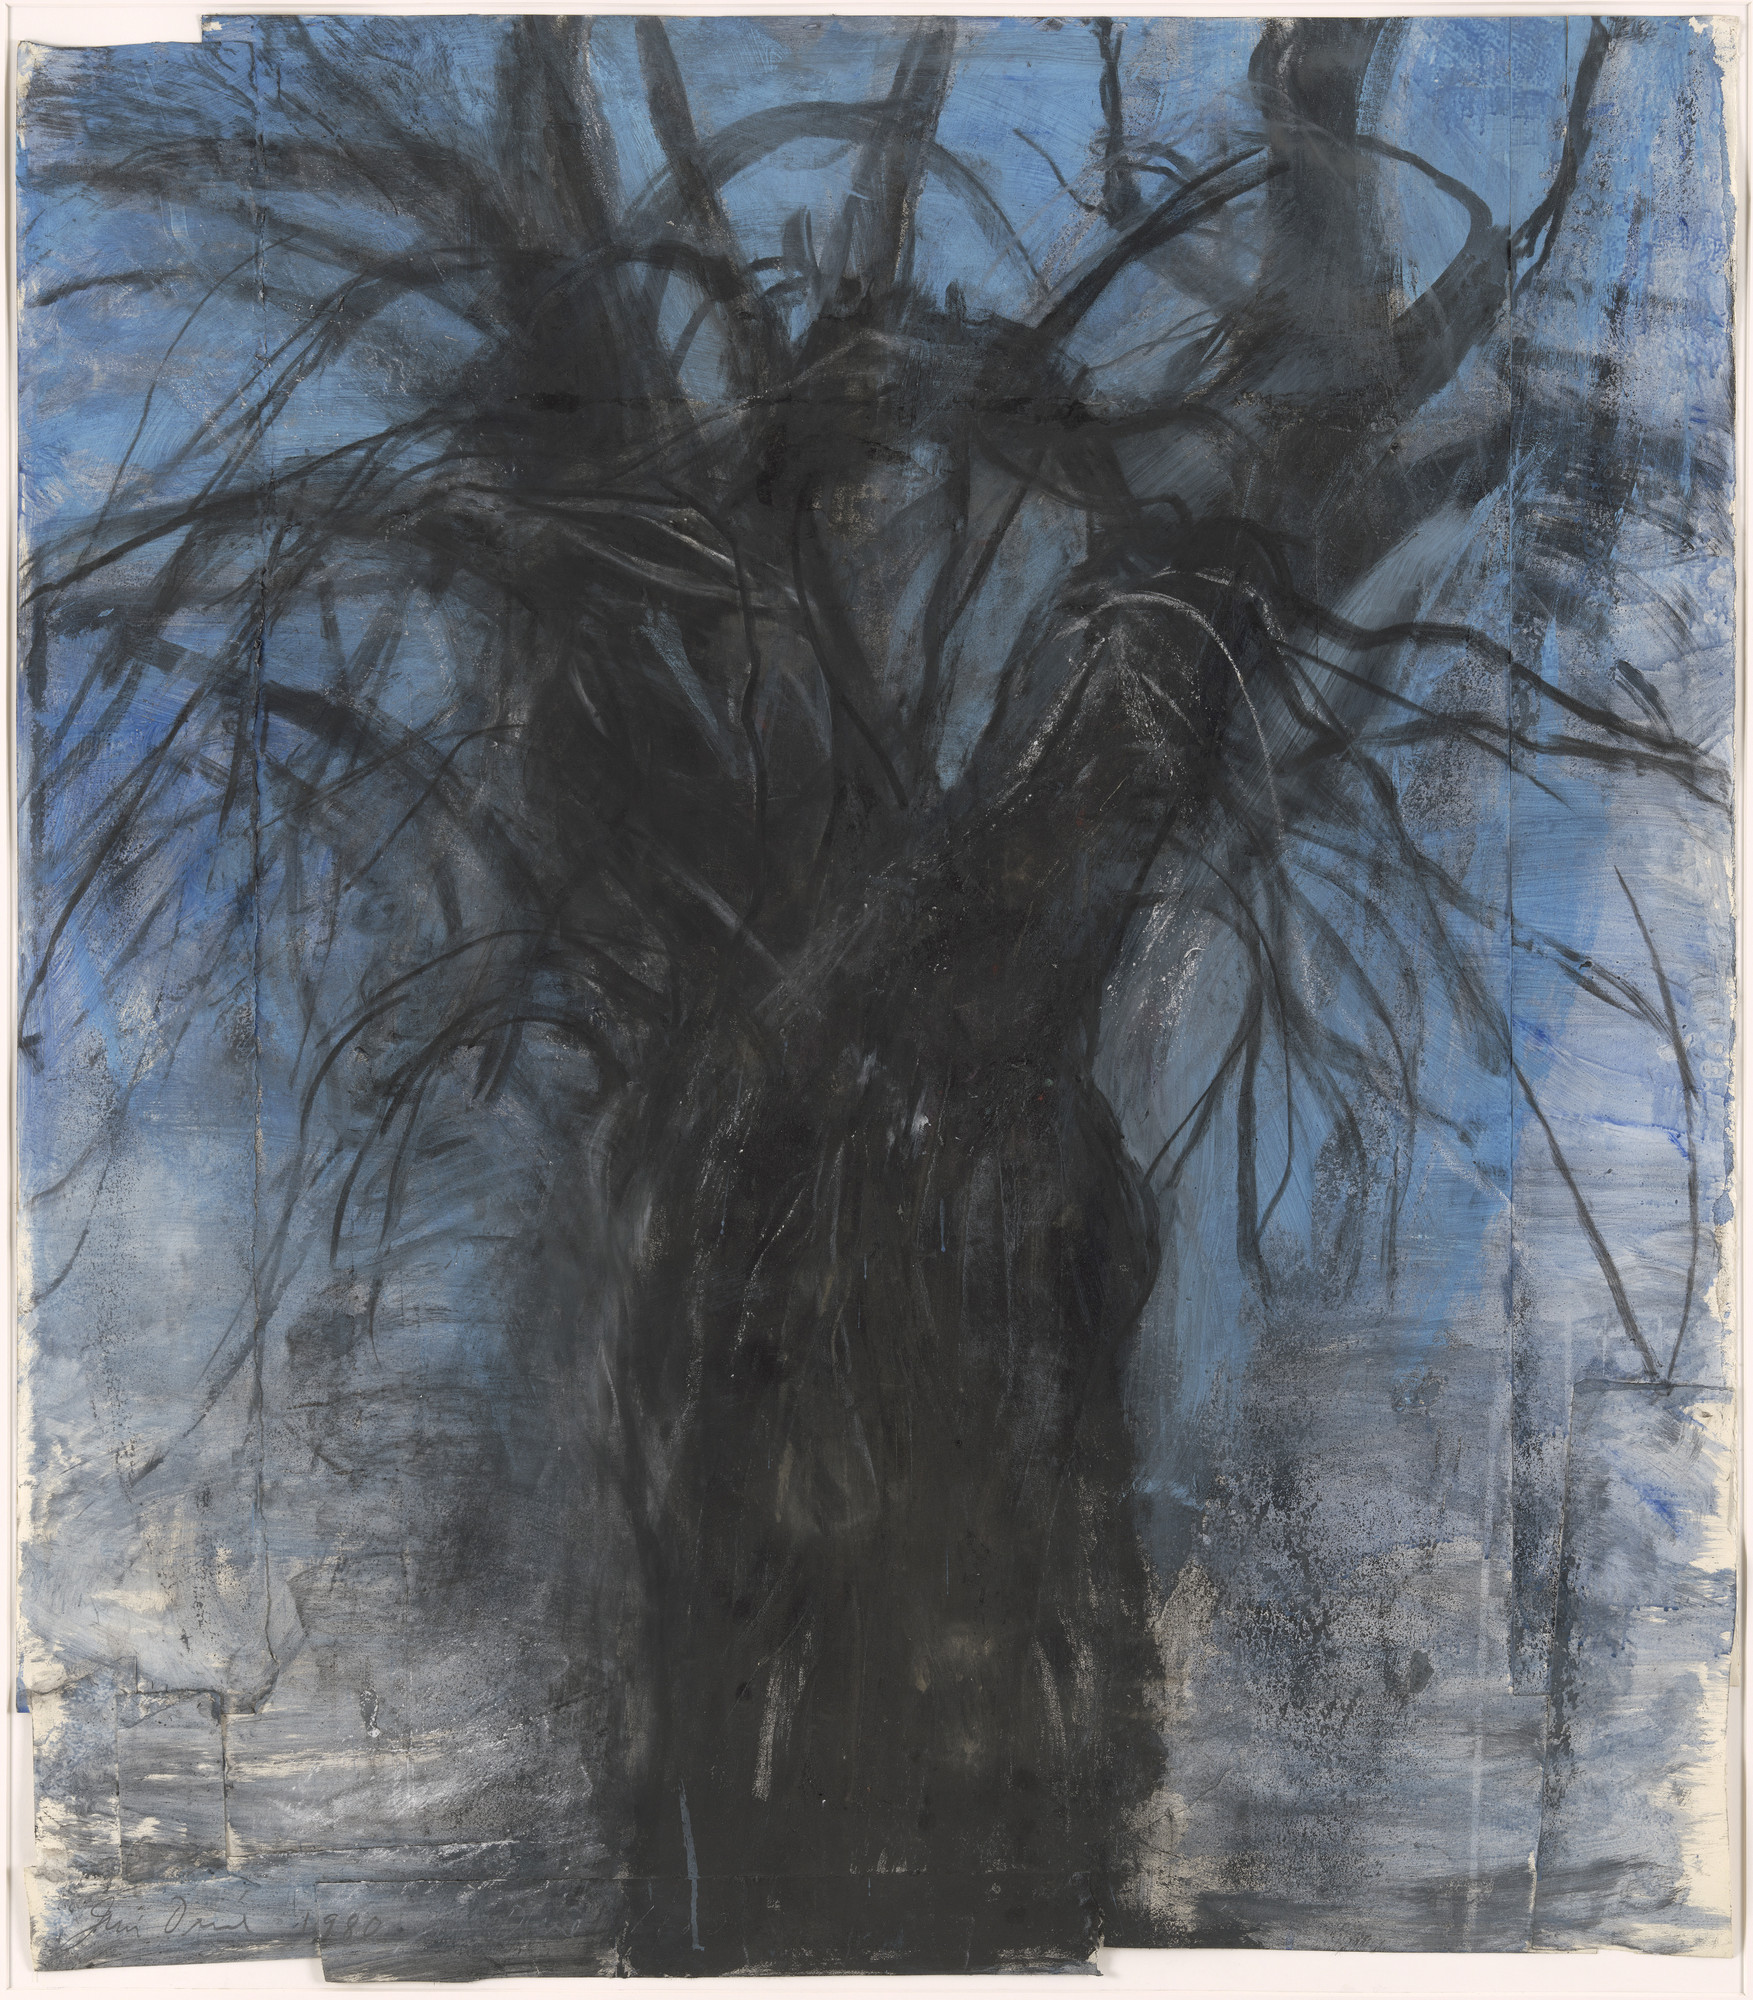 Jim Dine. A Tree that Shatters the Dancing. 1980. Synthetic polymer paint, synthetic polymer spray paint, charcoal and pastel on cut-and-pasted paper. 56 1⁄8 × 5 1/8ʺ (143.4 × 127.5 cm) (irreg). Gift of Nancy and Jim Dine in memory of Myron Orlofsky. © 2016 Jim Dine / Artists Rights Society (ARS), New York. Photo: Jonathan Muzikar